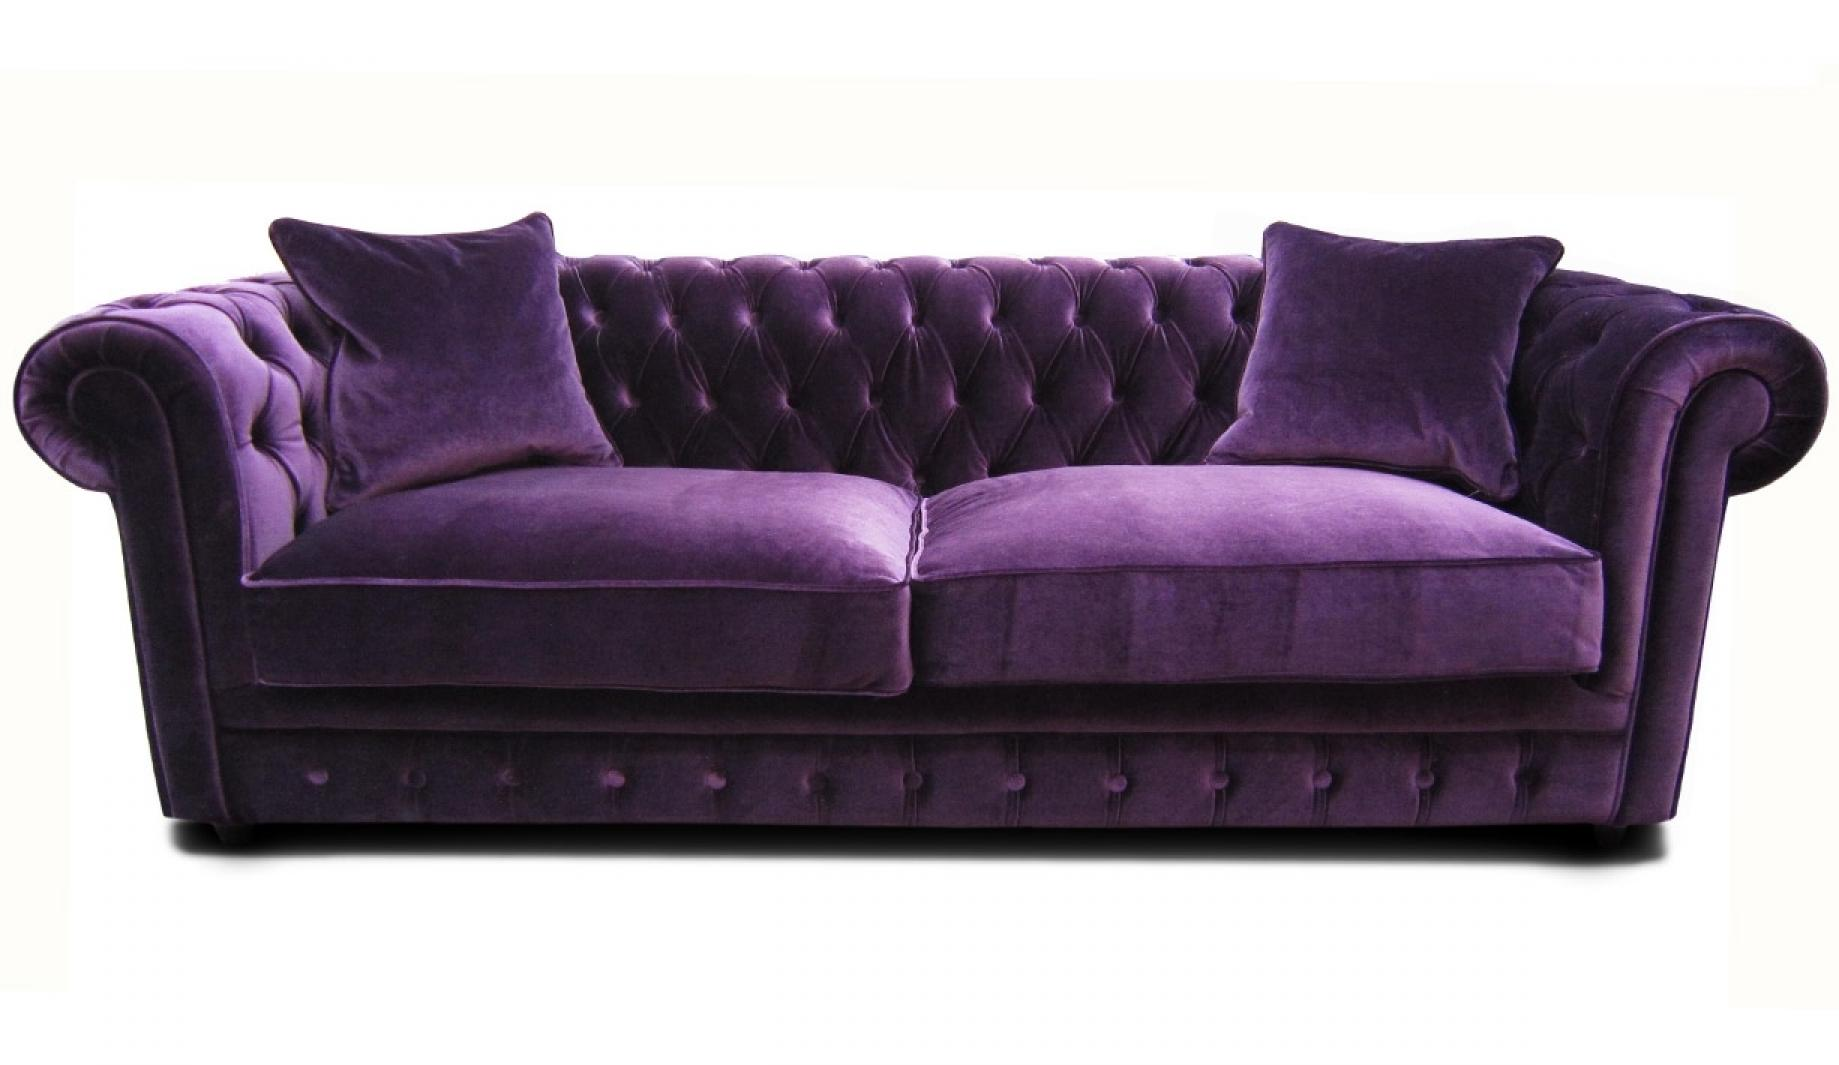 chesterfield vintage sofa sir chesterfield ledermbel